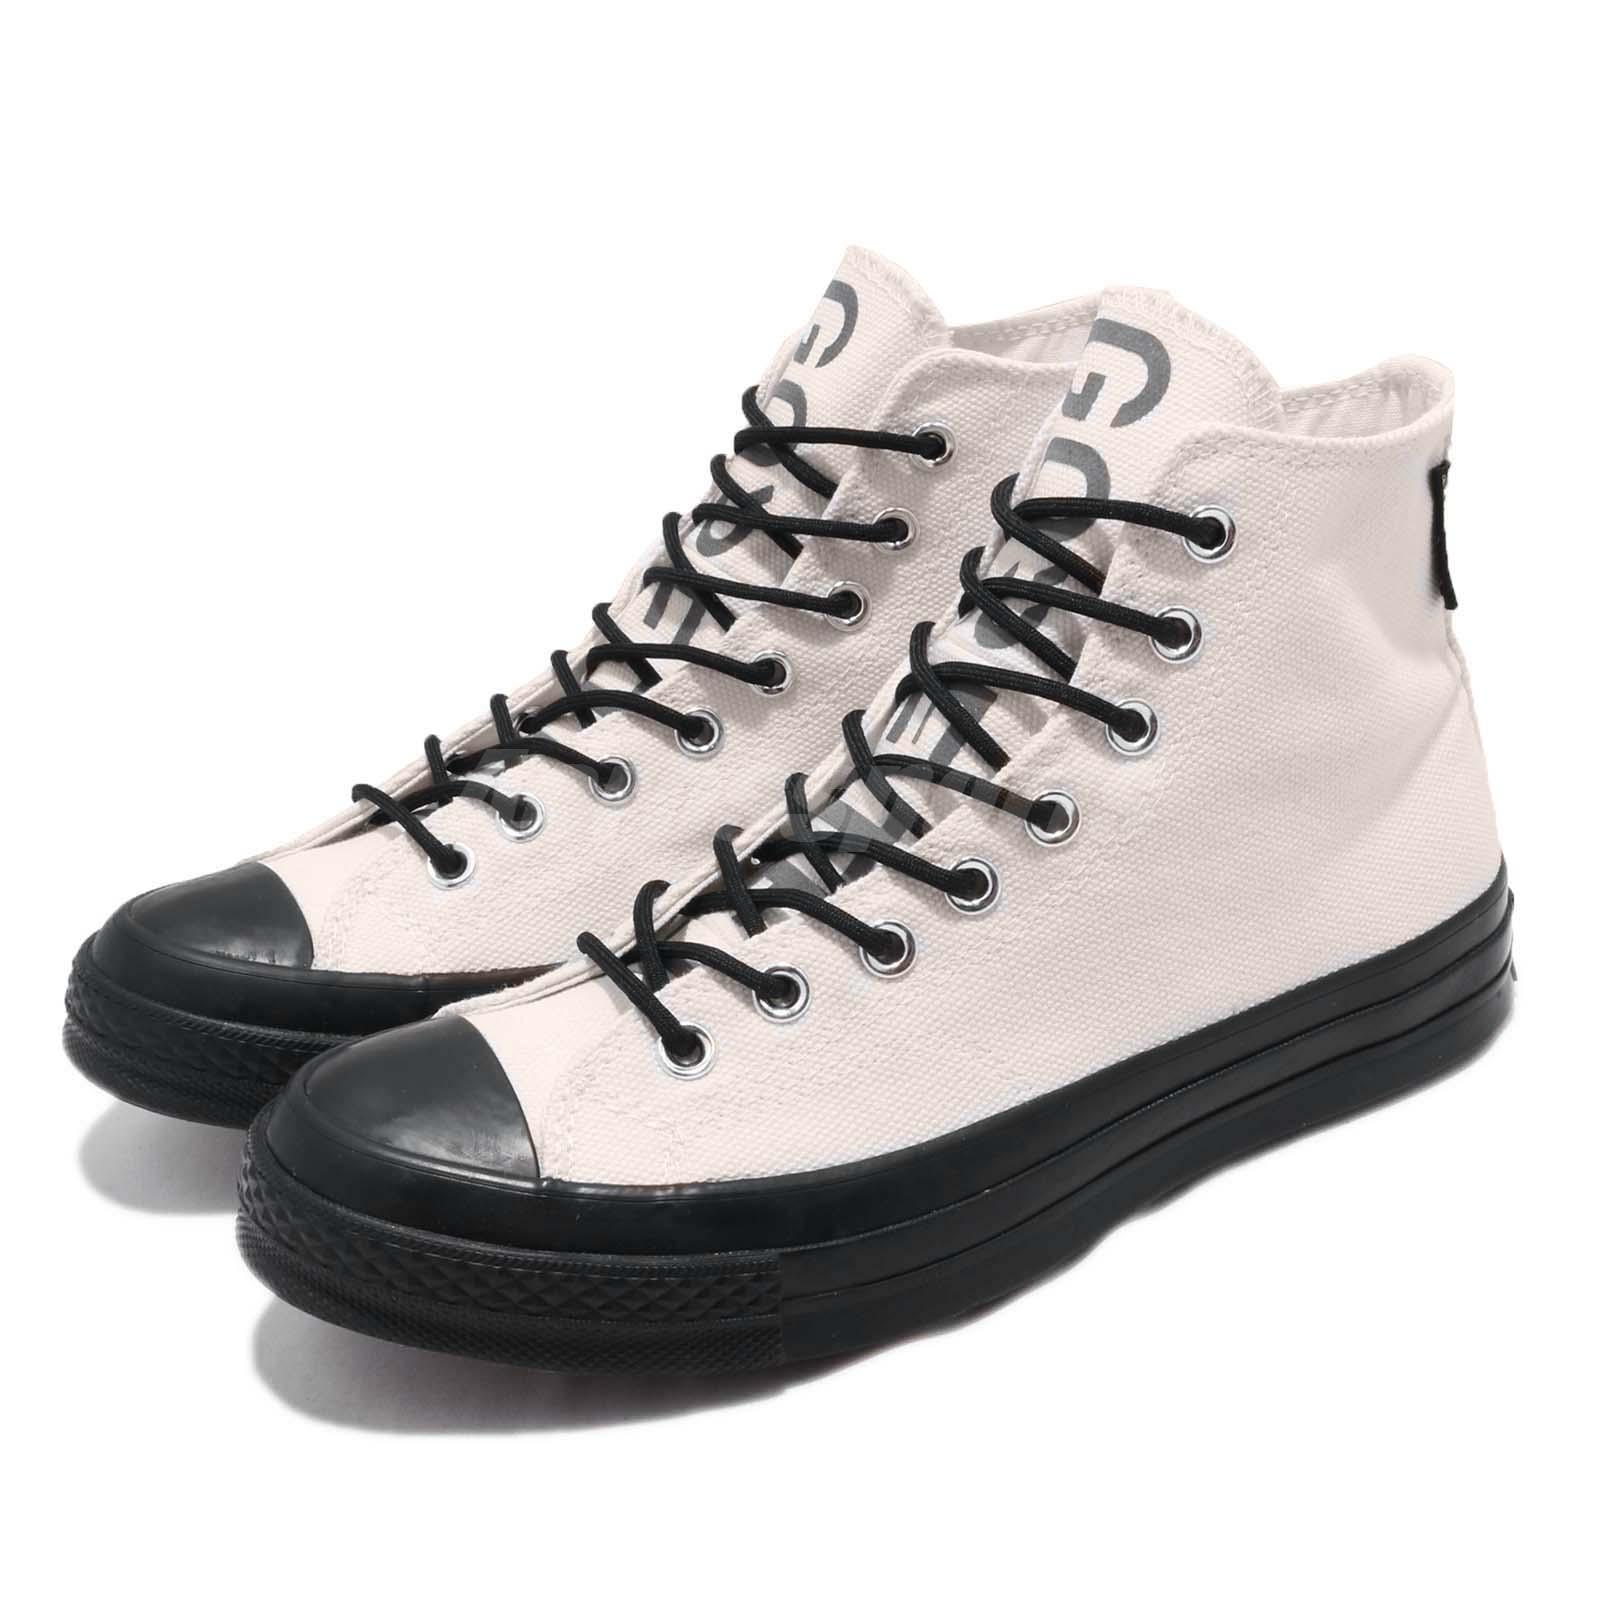 1d266bf8b15d Details about converse first string chuck taylor all star hi gore tex men  white jpg 1600x1600